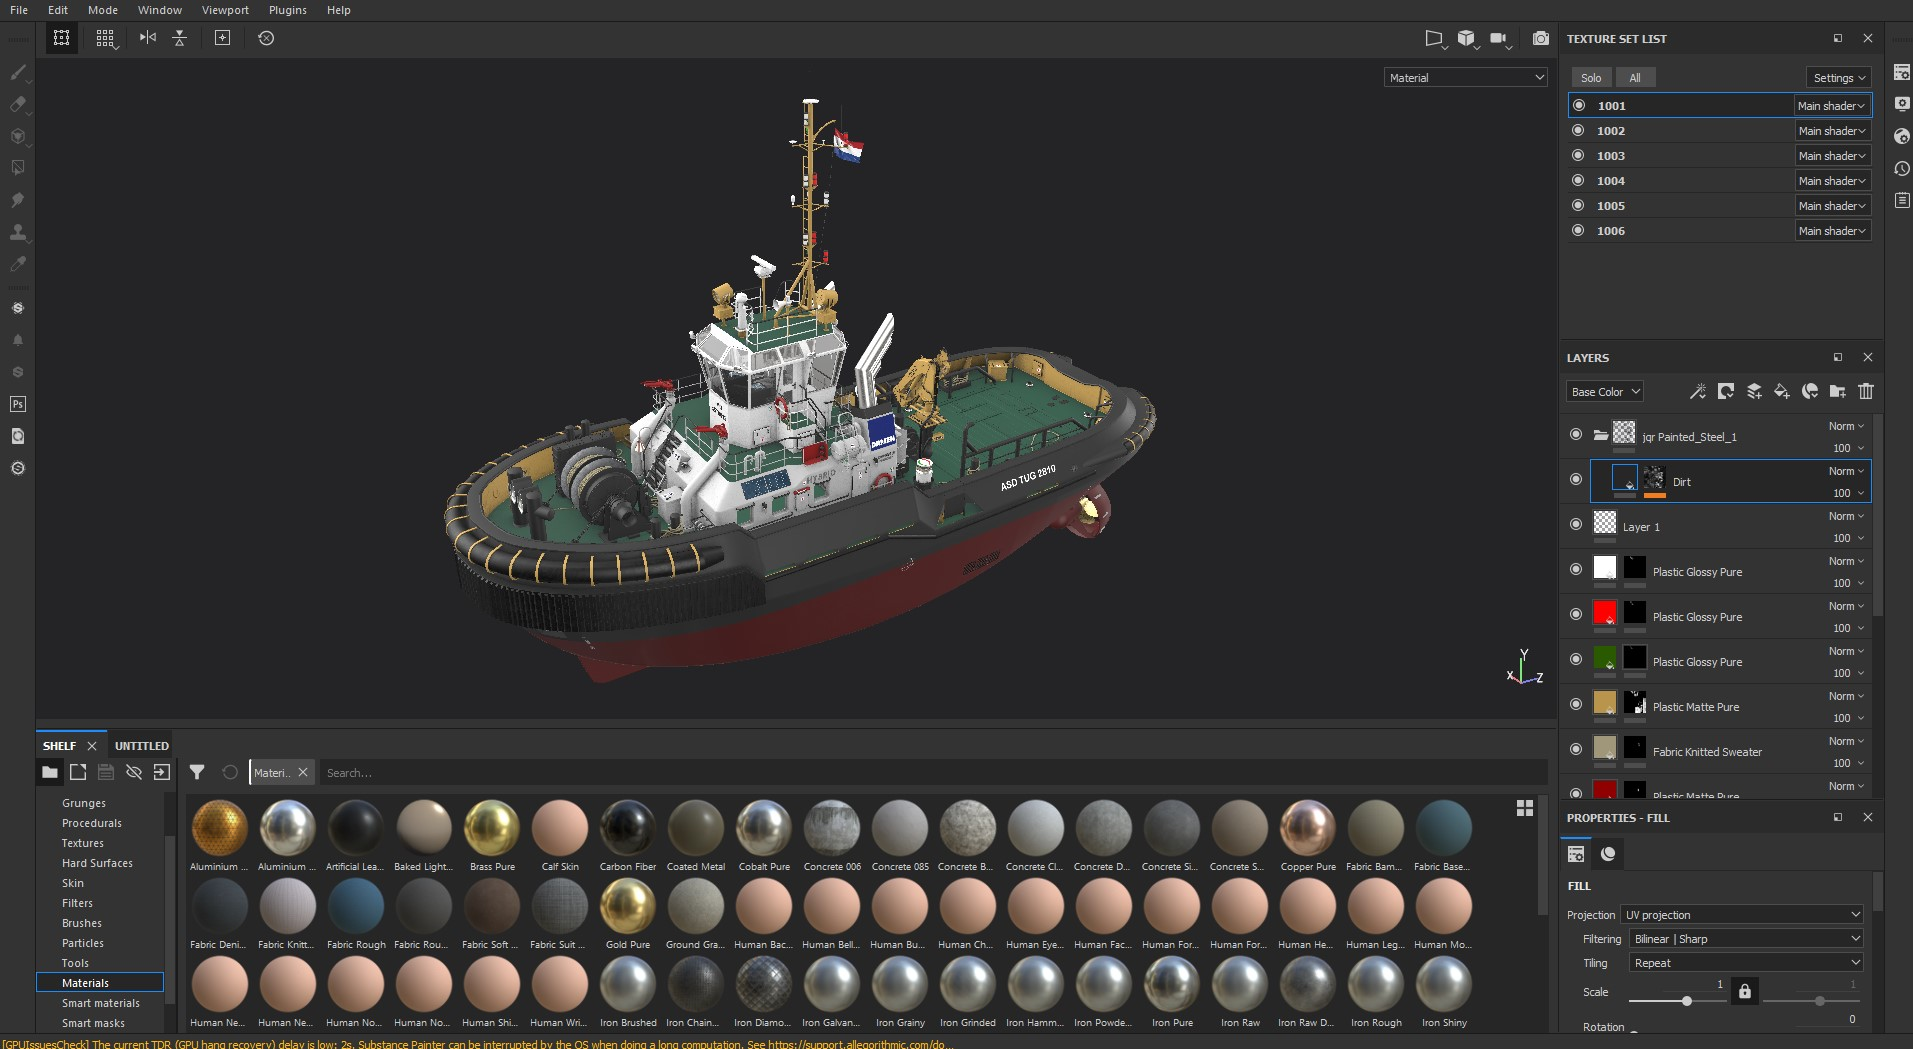 tugboat textures